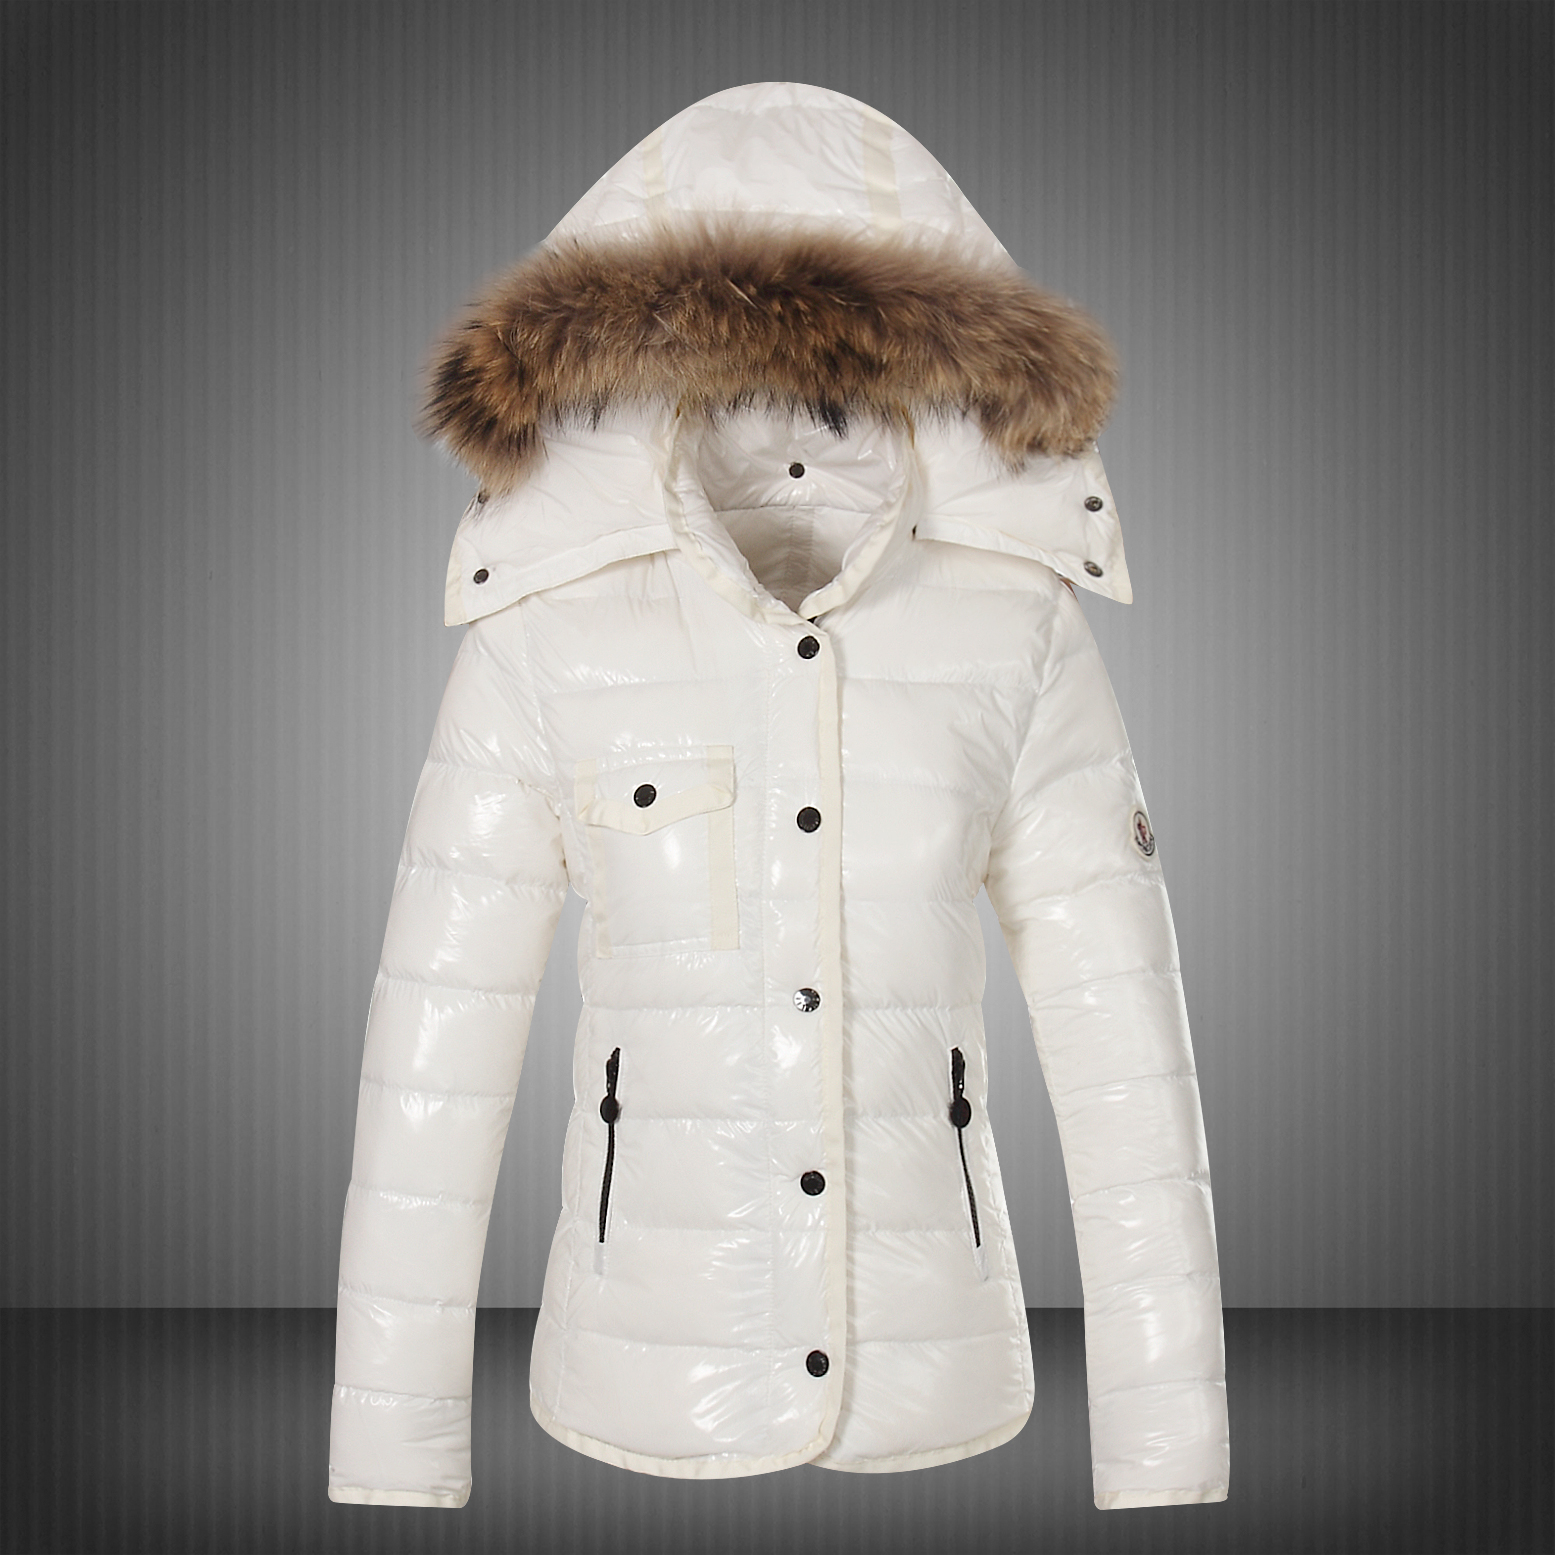 New Moncler Jackets For Women White With Fur Cap UK